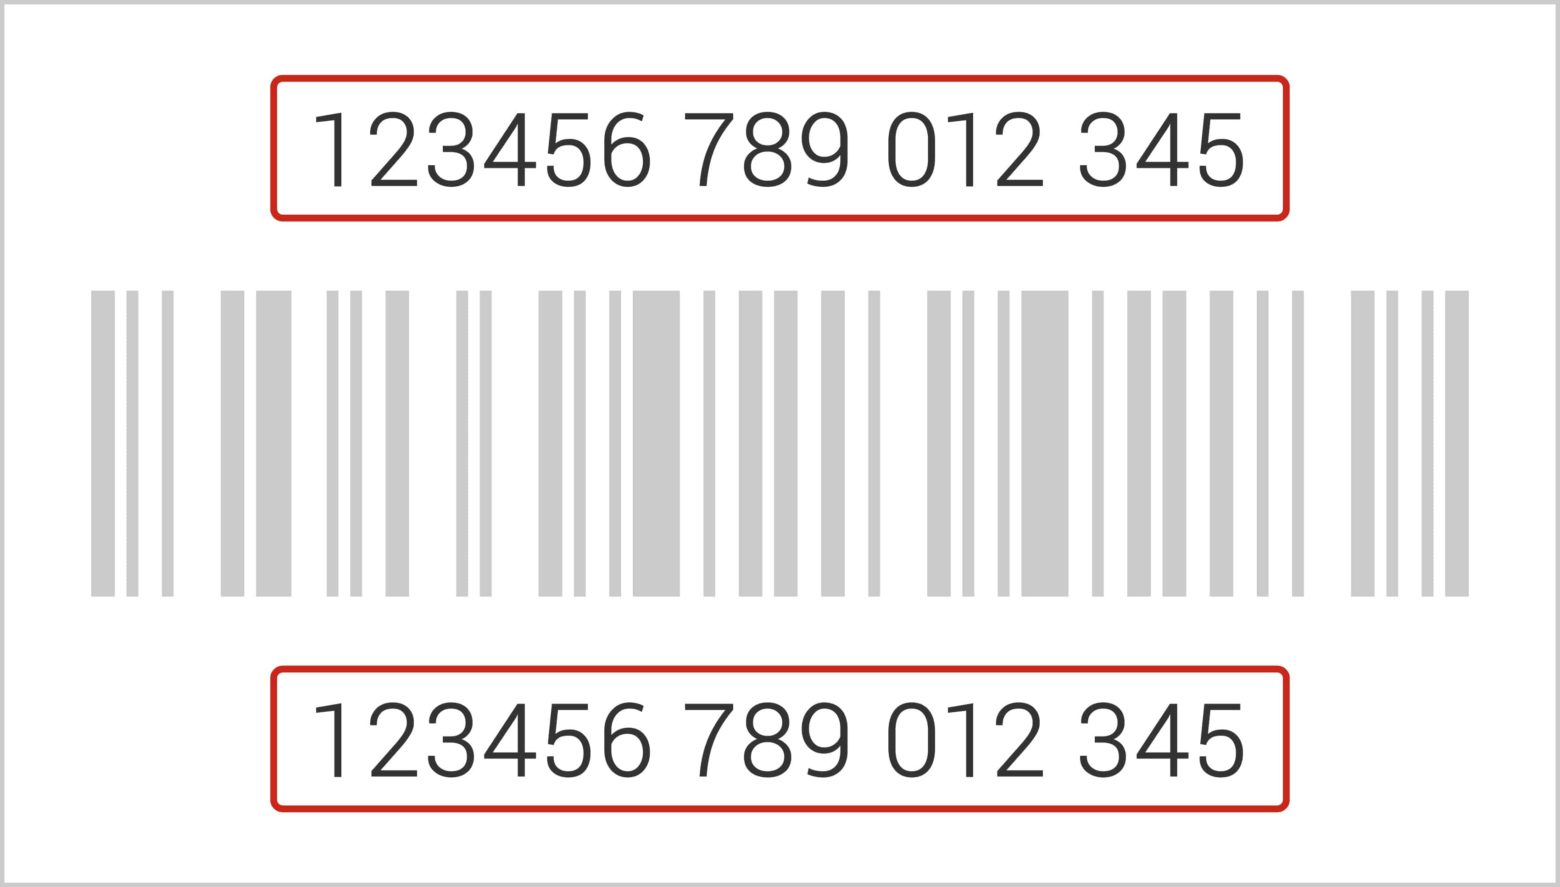 Tracking Number Formats by Carrier